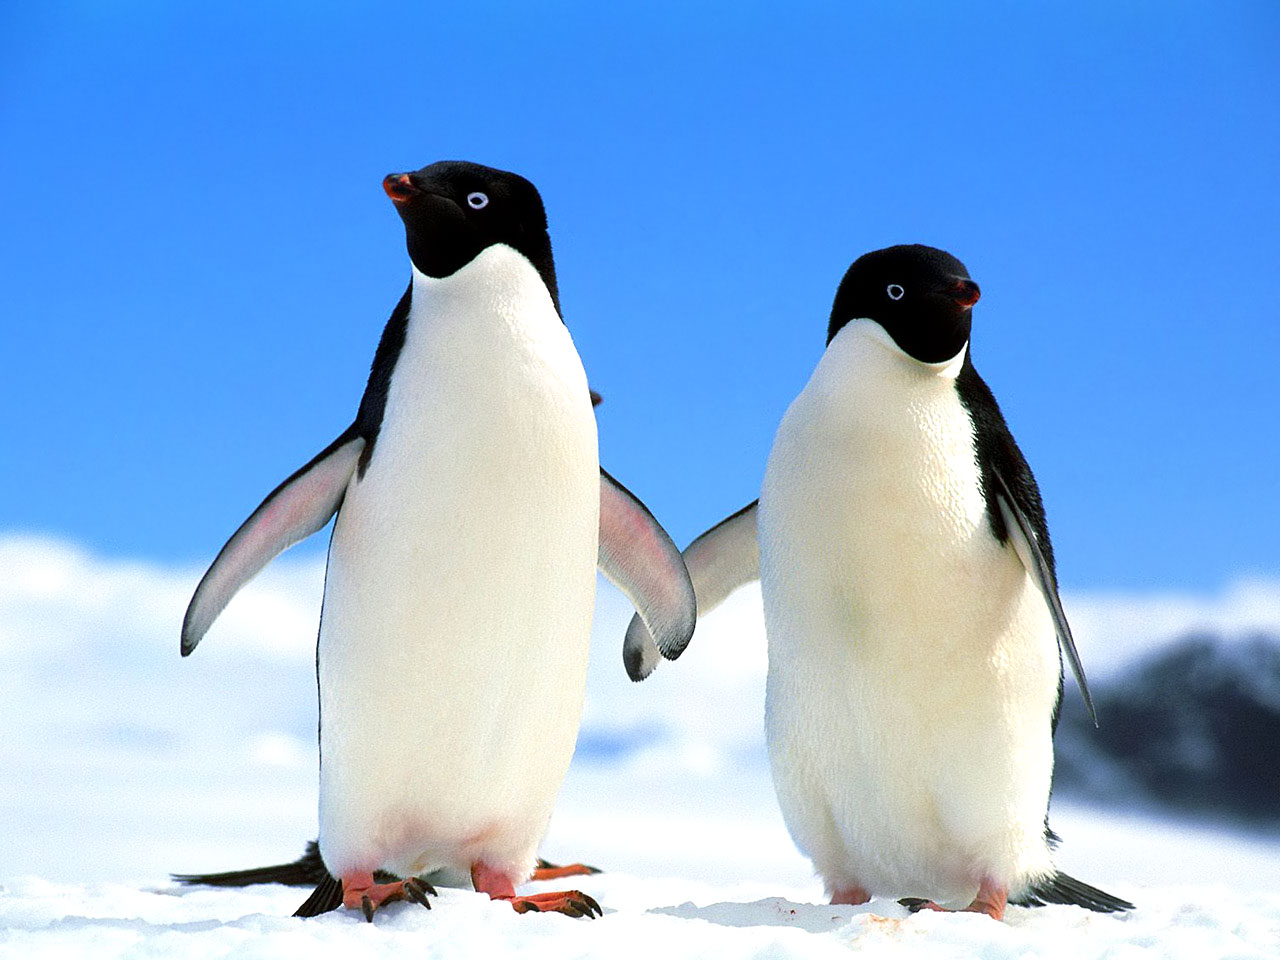 Cute Baby Penguins 6783773 1280x960